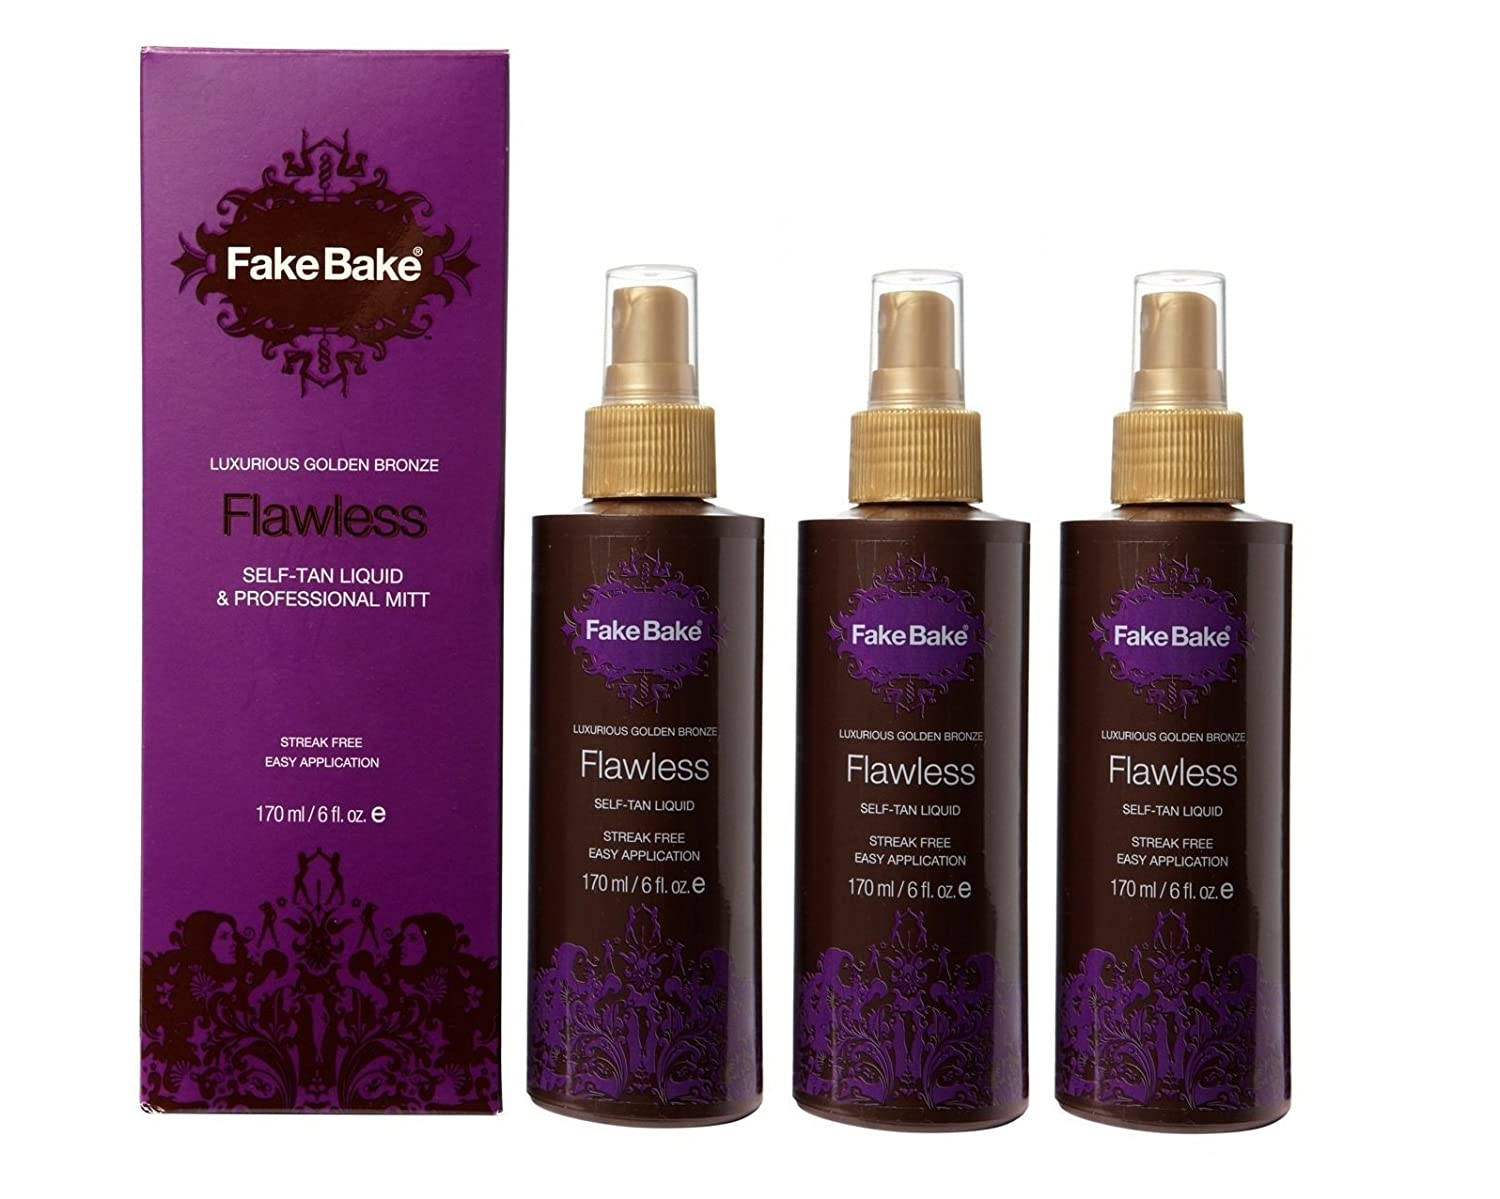 Amazon : Fake Bake Flawless, 6 Floz : Self Tanning Products : Beauty